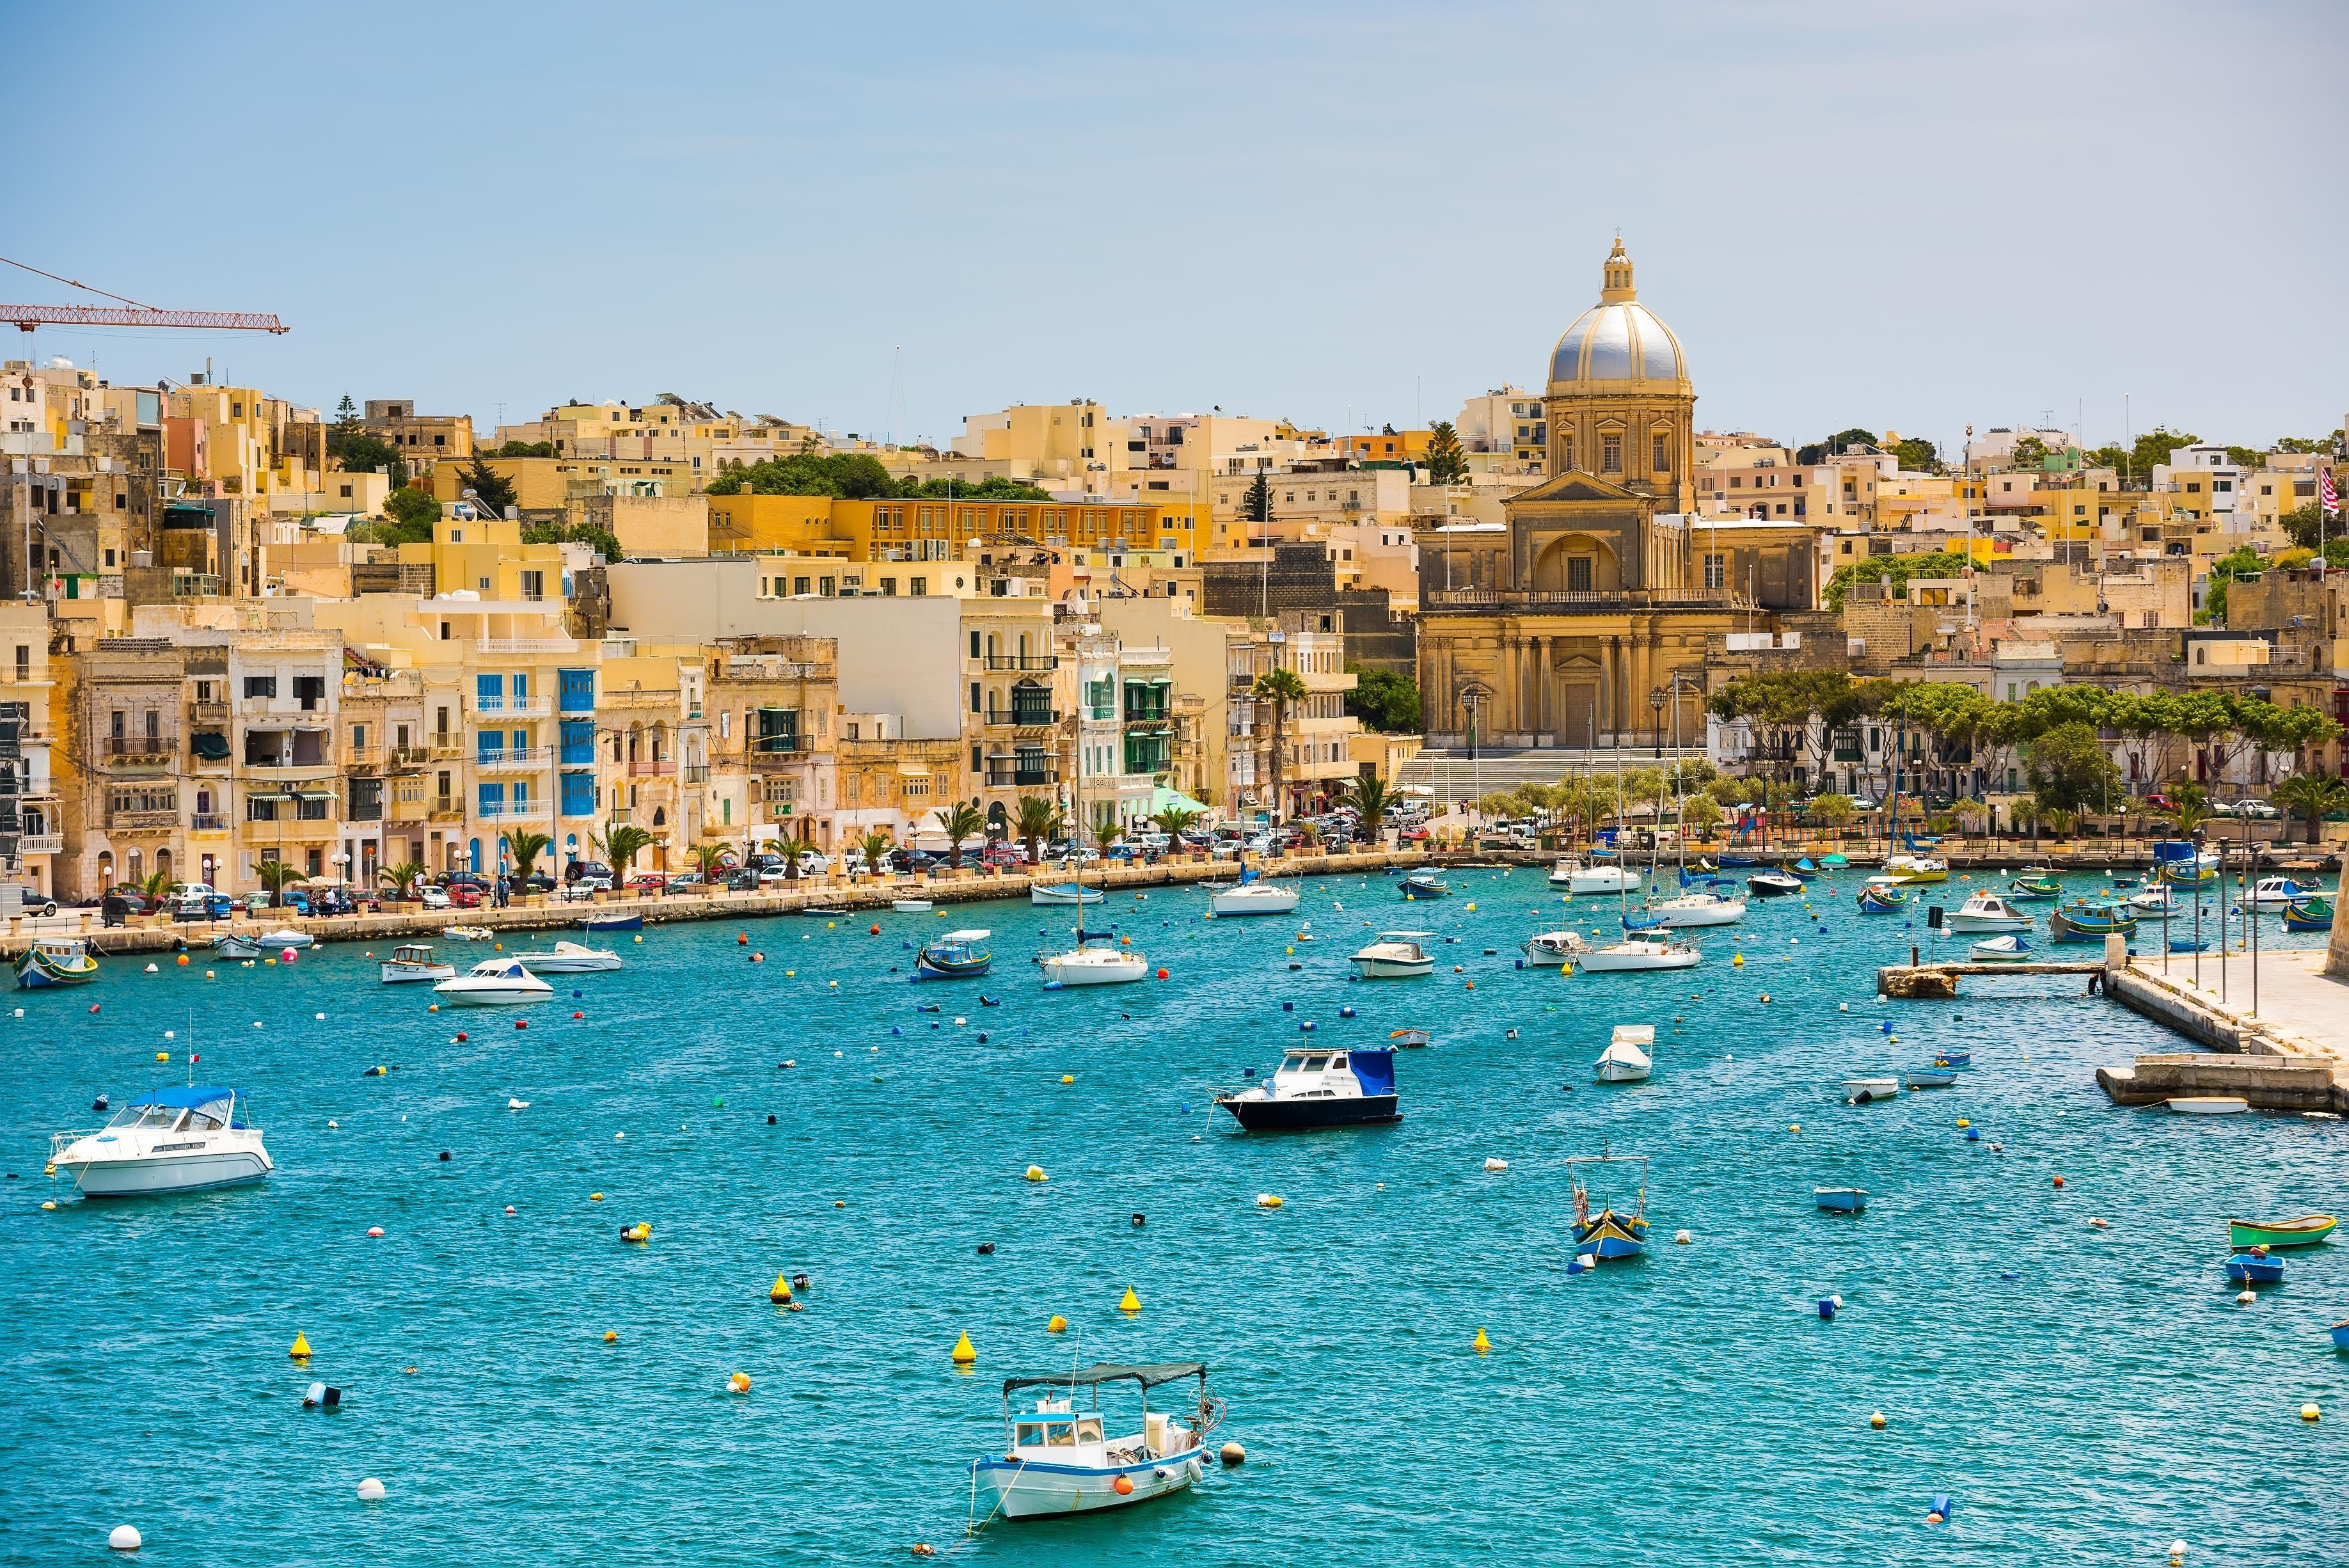 How to Spend 2 Days in Valletta